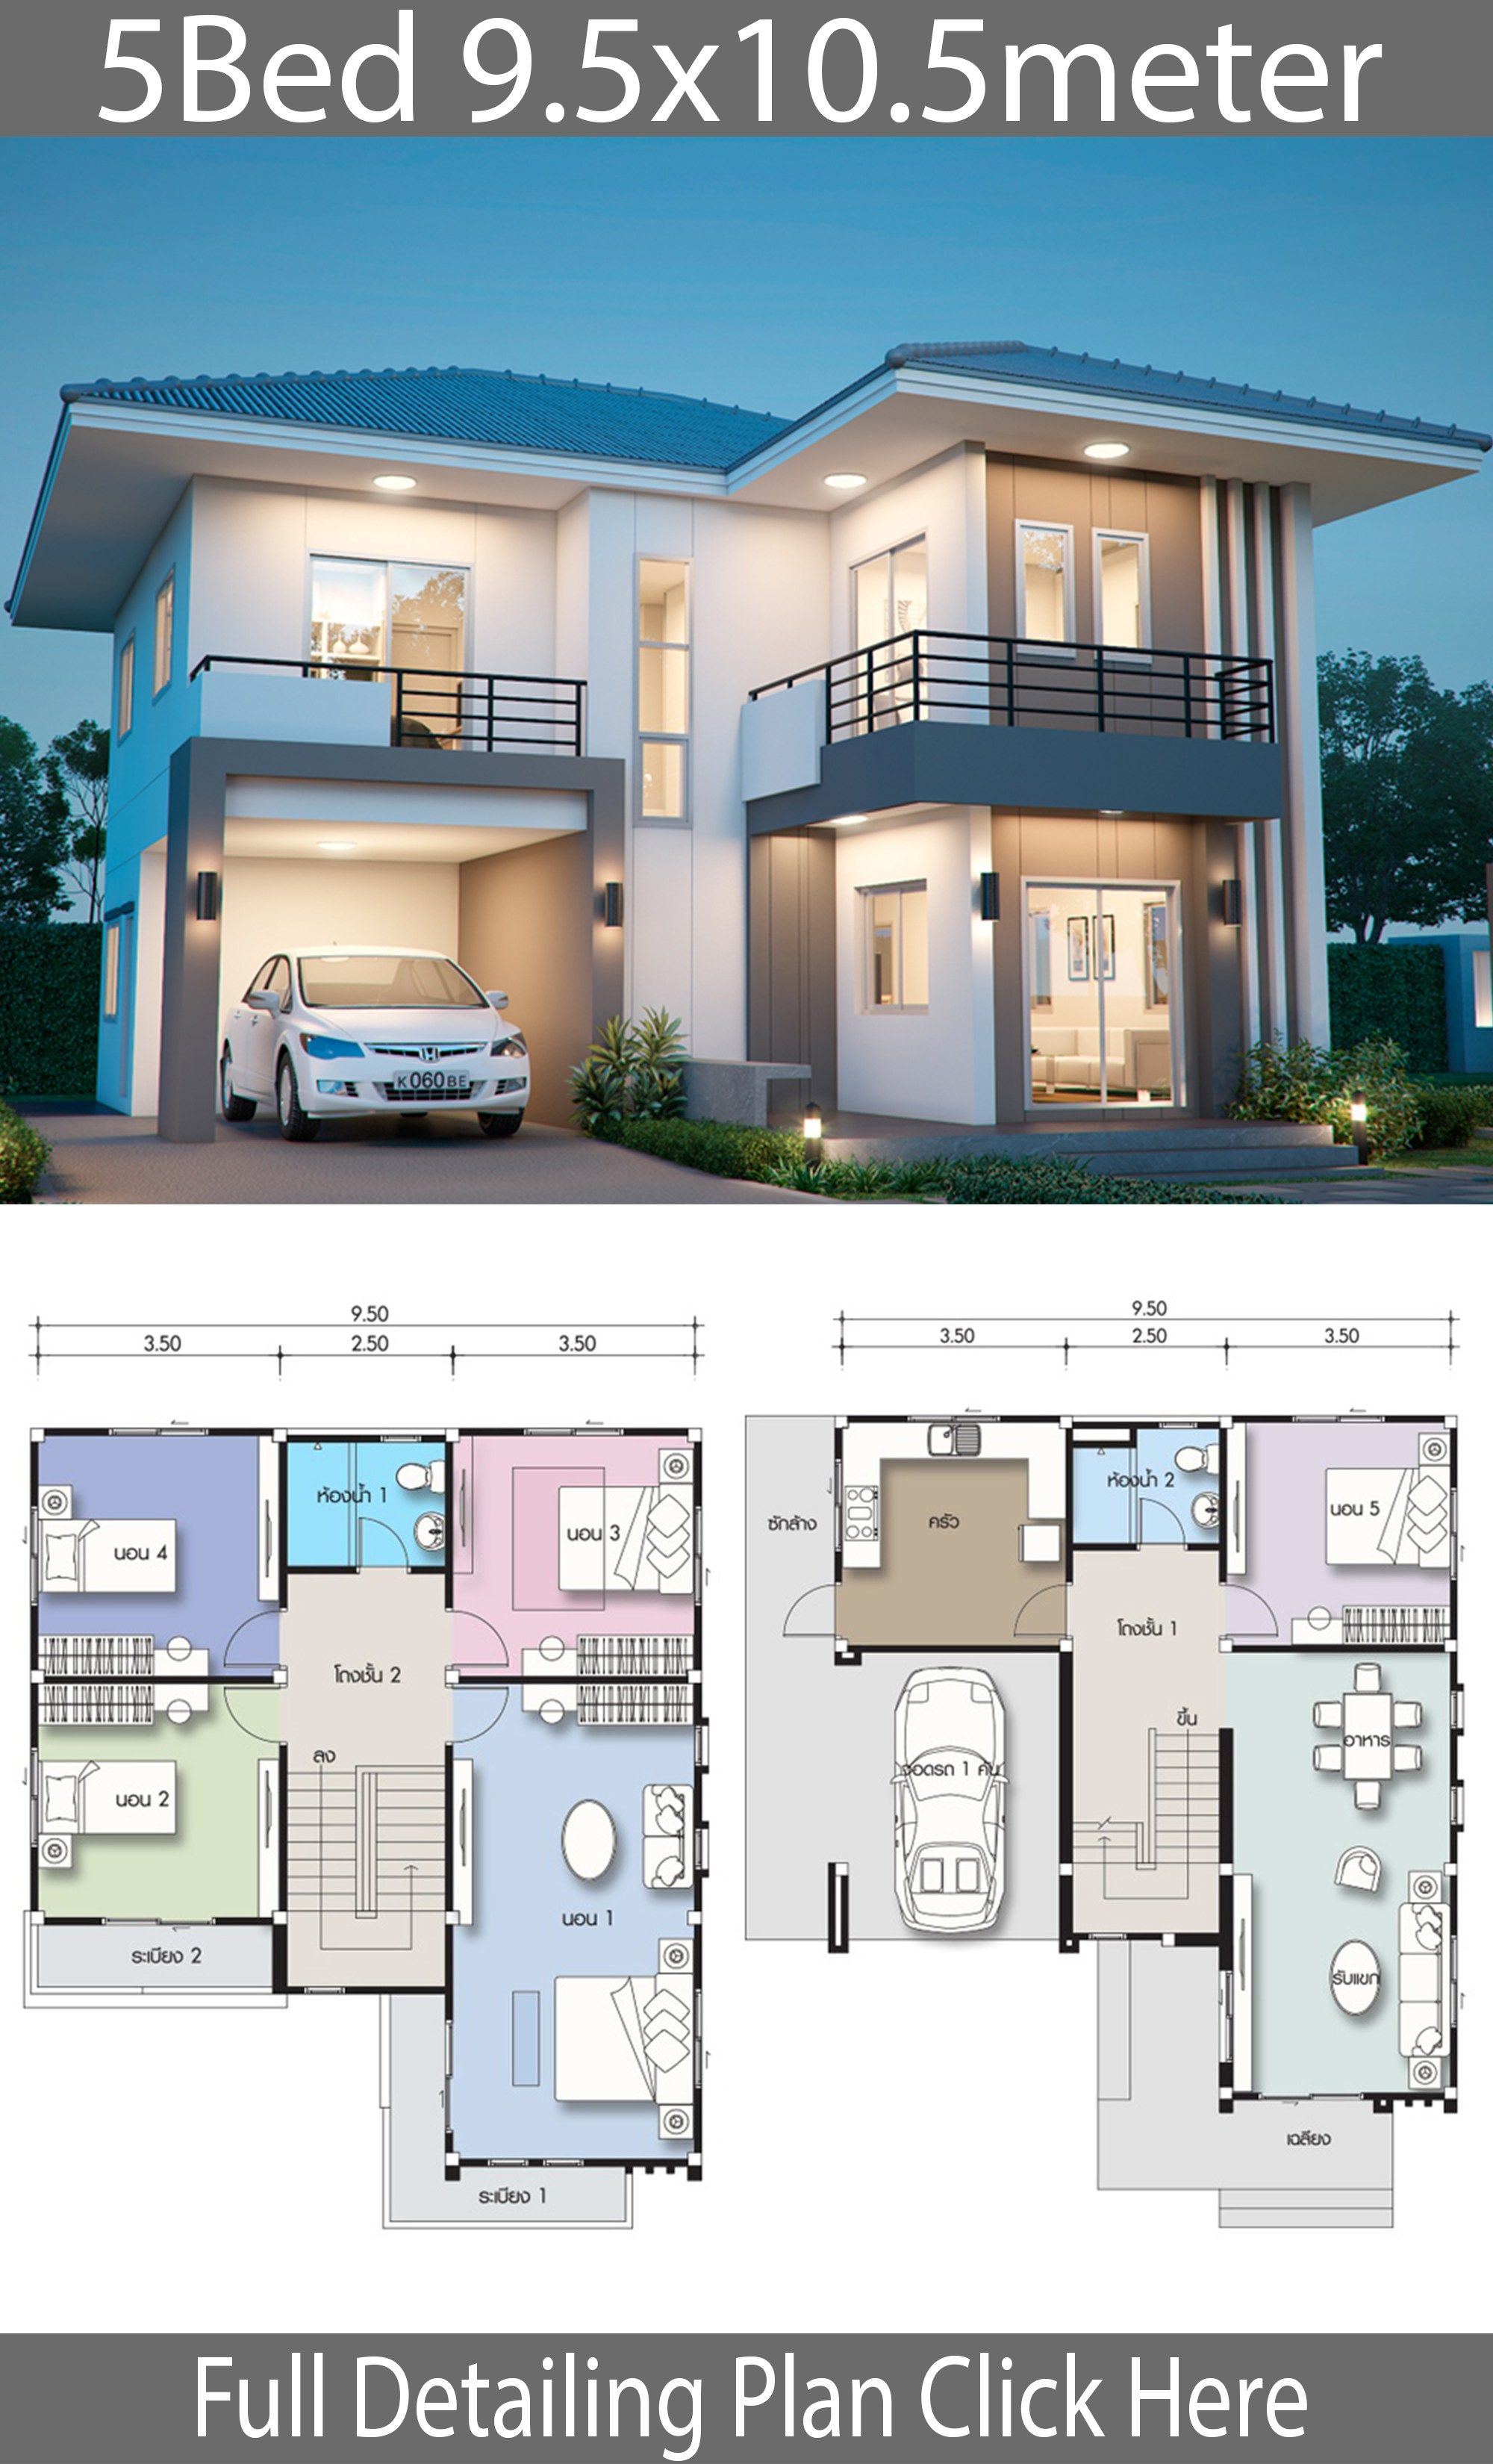 House Design Plan 9 5x10 5m With 5 Bedrooms Style Modernhouse Description Number Of Floors 2 Duplex House Design Simple House Design House Architecture Design